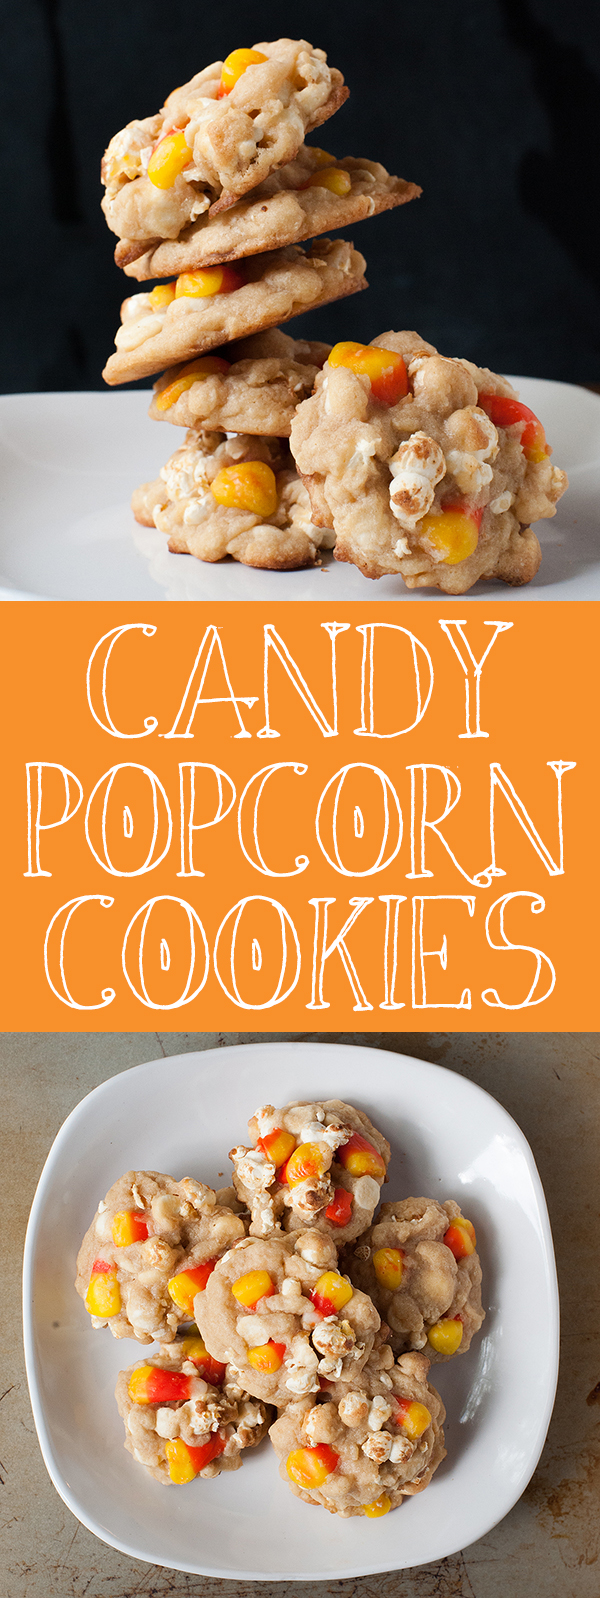 Candy Popcorn Cookies